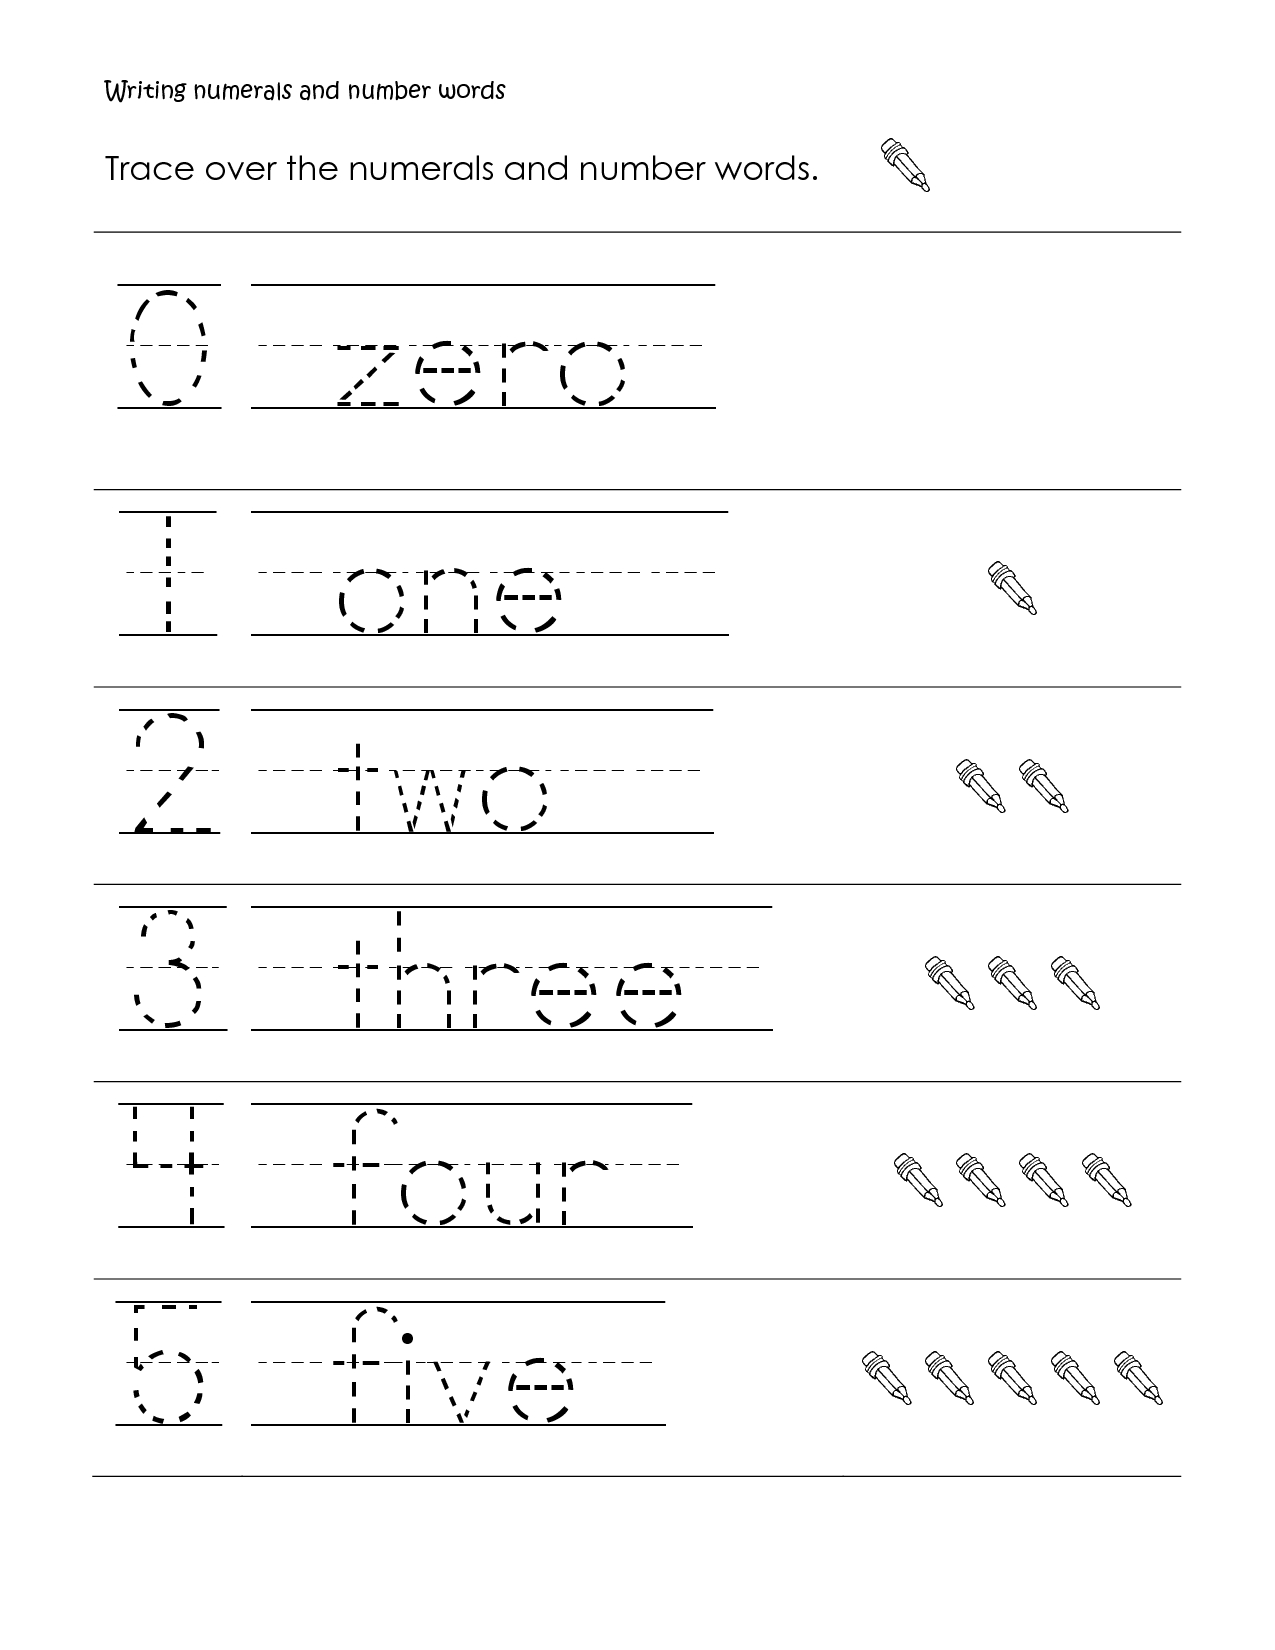 1St Grade Handwriting Practice Sheets Worksheets For All | Download - Free Printable Language Arts Worksheets For 1St Grade